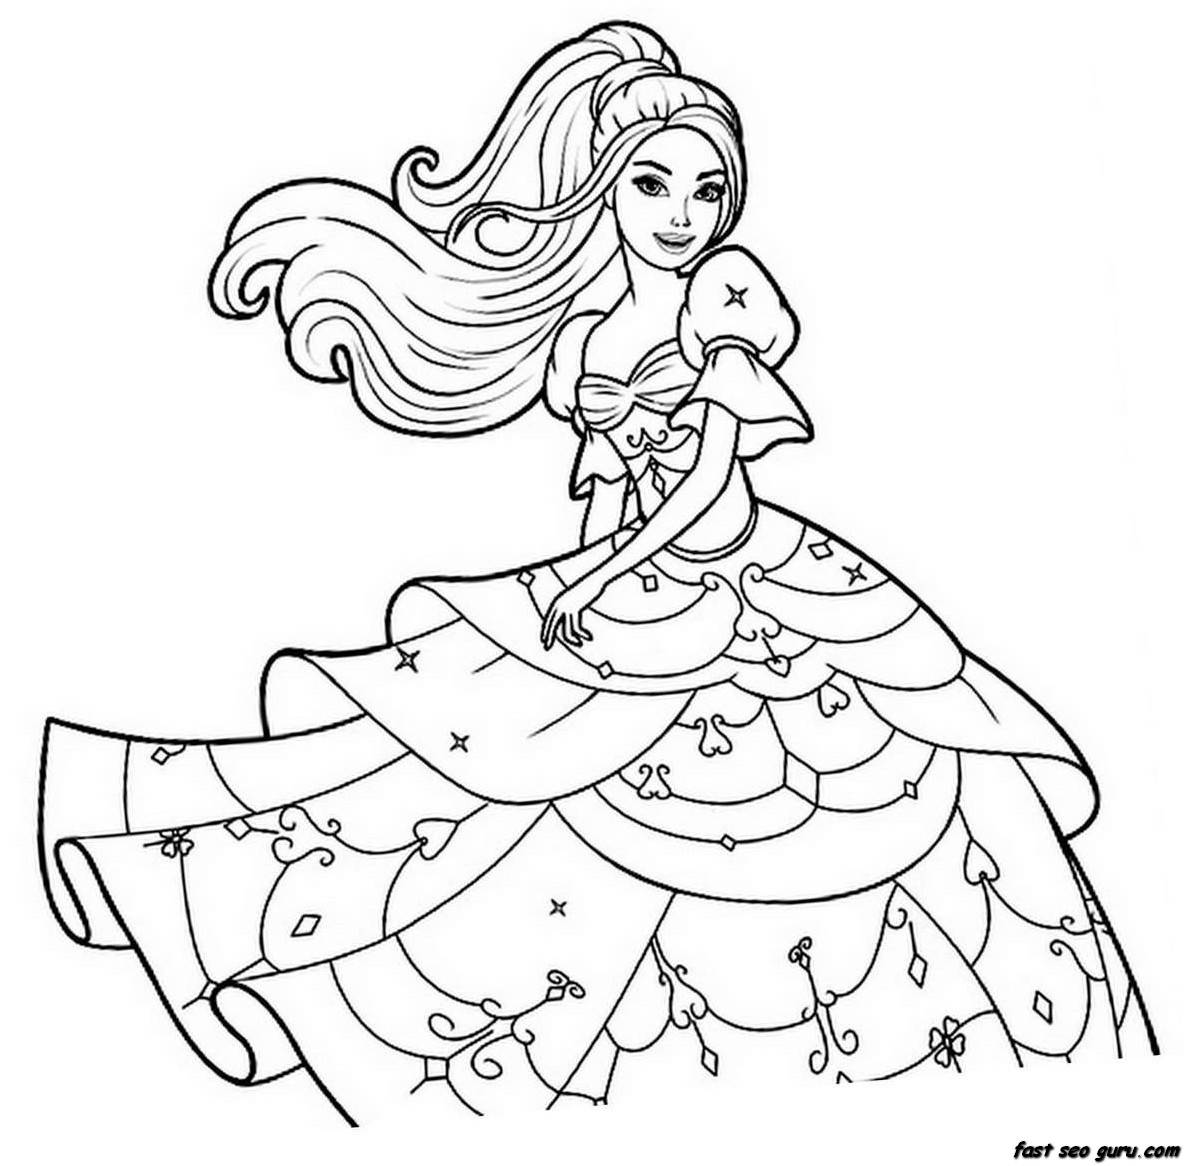 coloring cute girl anime coloring pages best coloring pages for kids girl coloring cute